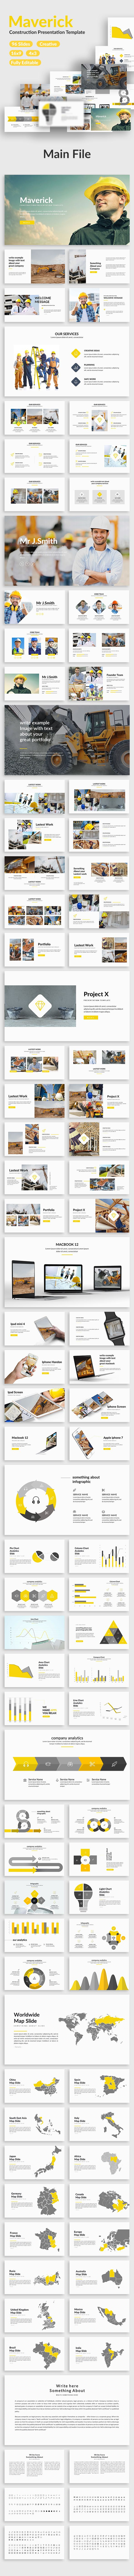 Maverick  Construction — Powerpoint PPT #free fonts #food presentation • Download ➝ https://graphicriver.net/item/maverick-construction-powerpoint-template/19729845?ref=pxcr